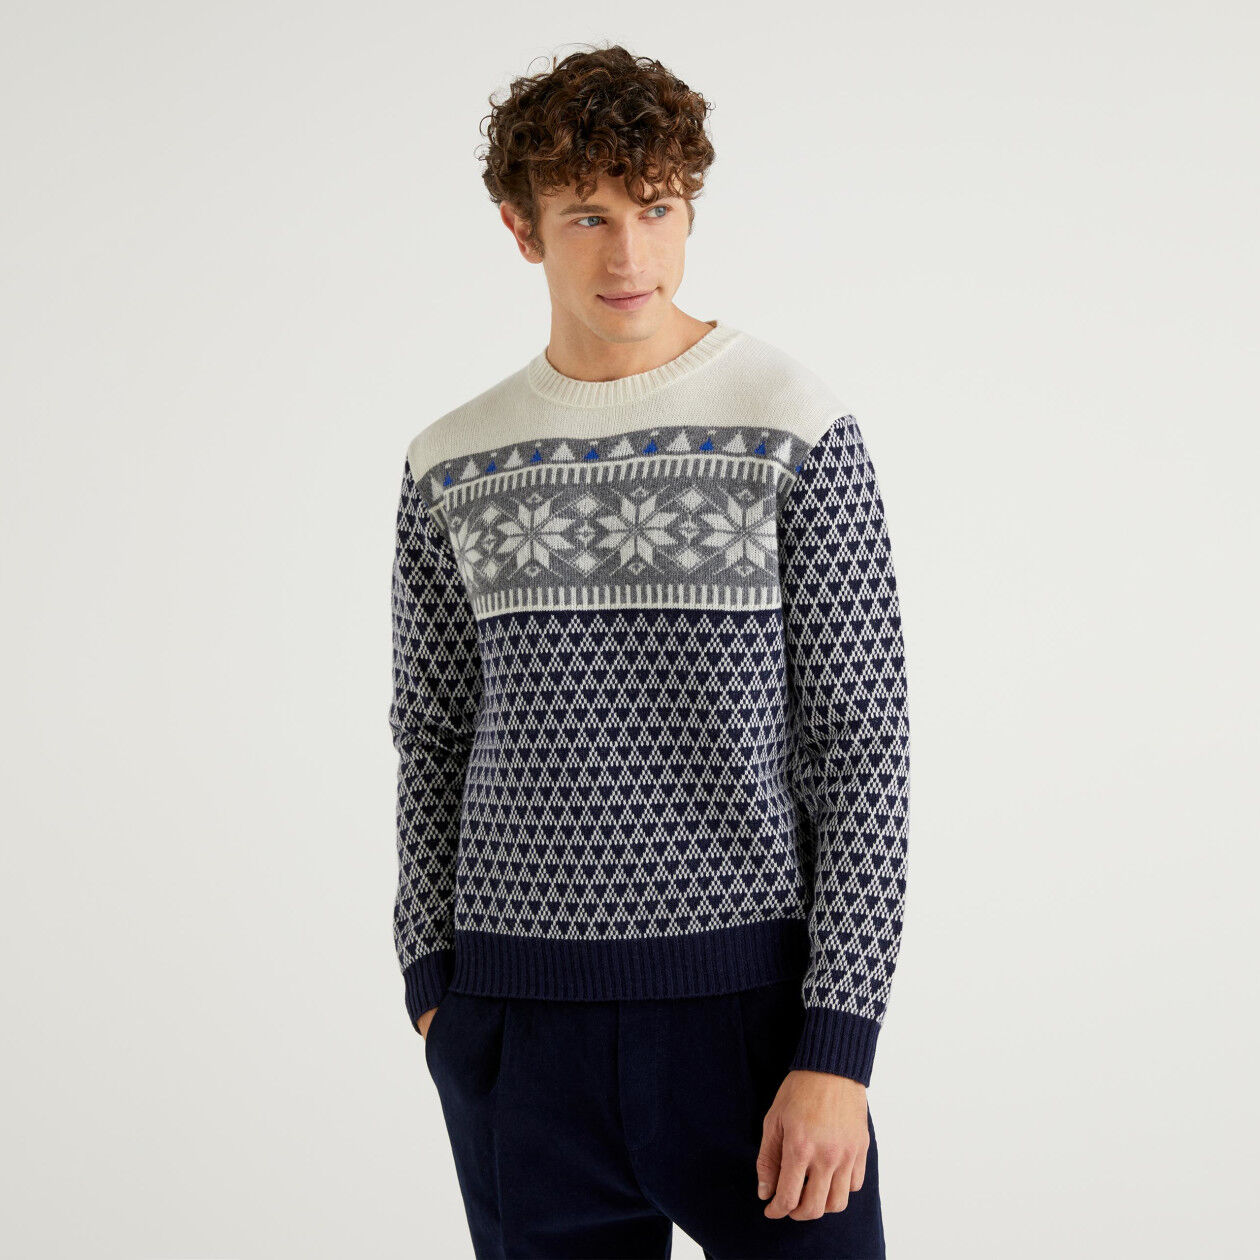 Round neck jacquard sweater